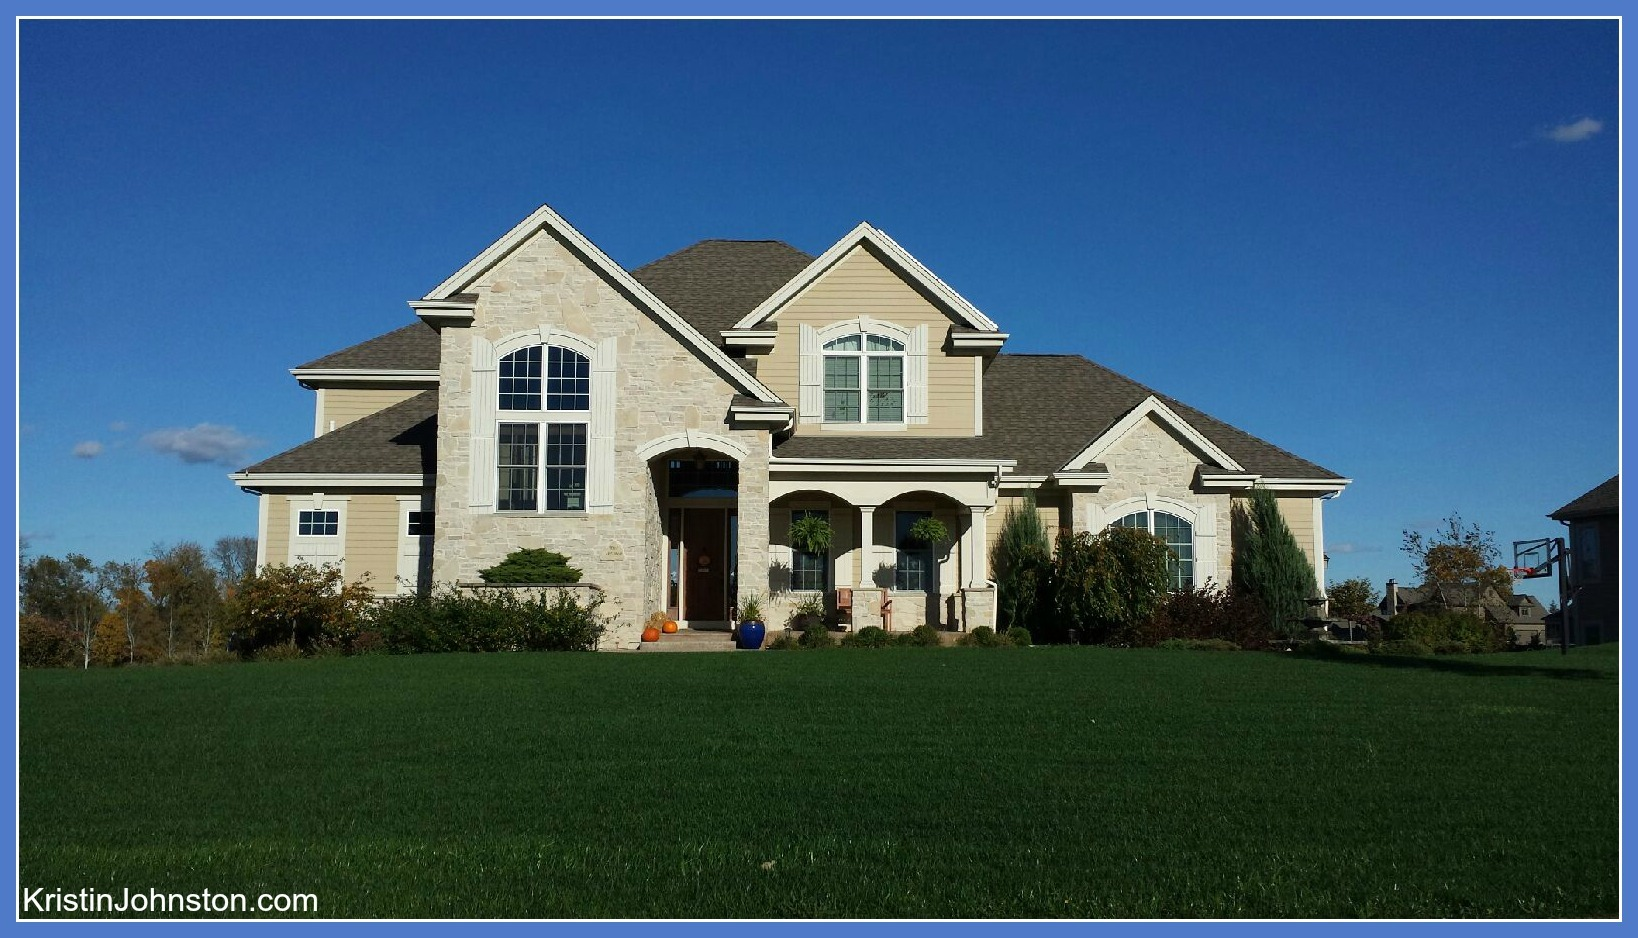 Homes for Sale in Oconomowoc WI